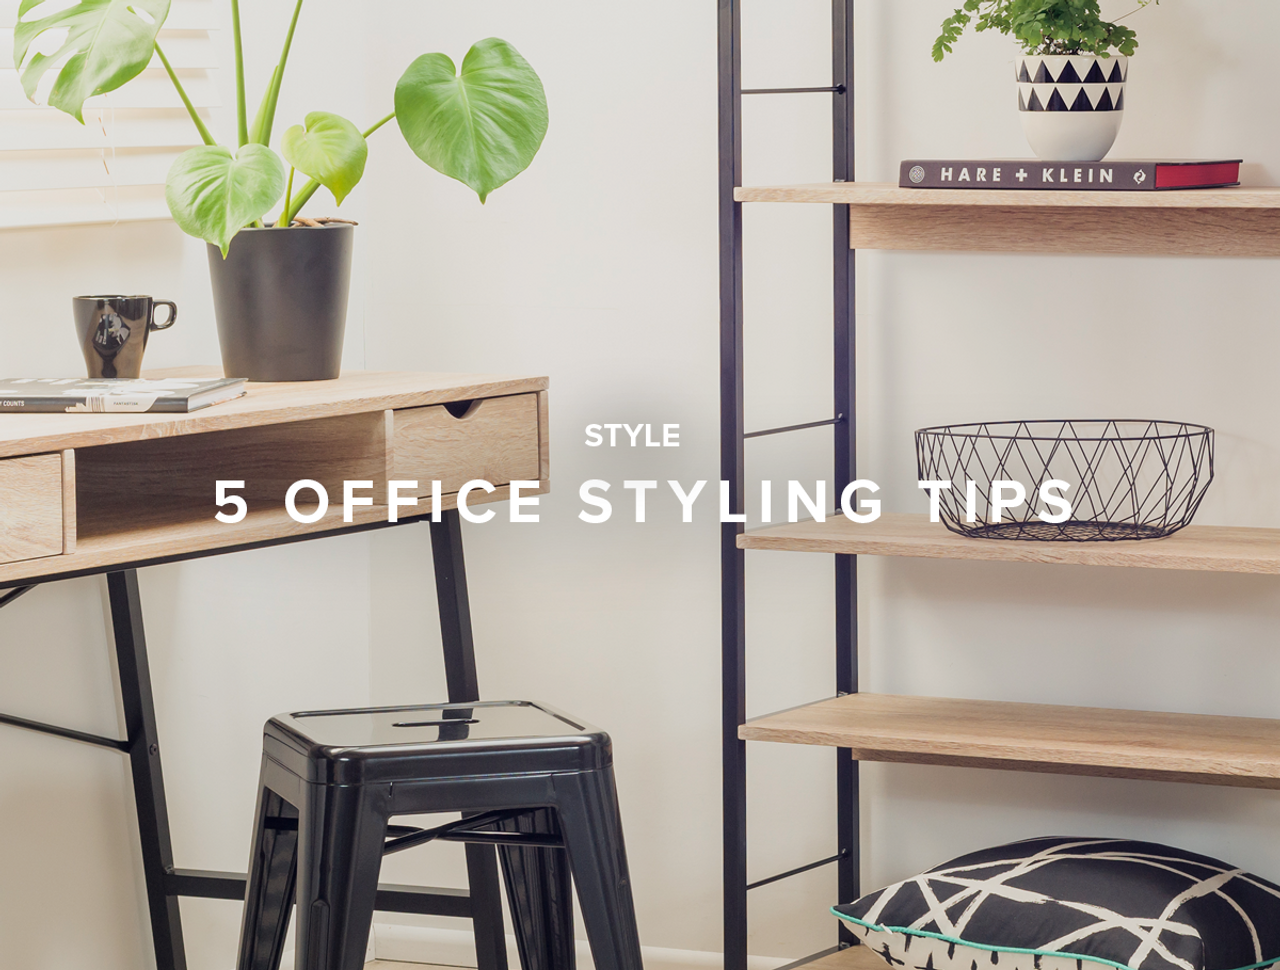 5 Office Styling Tips